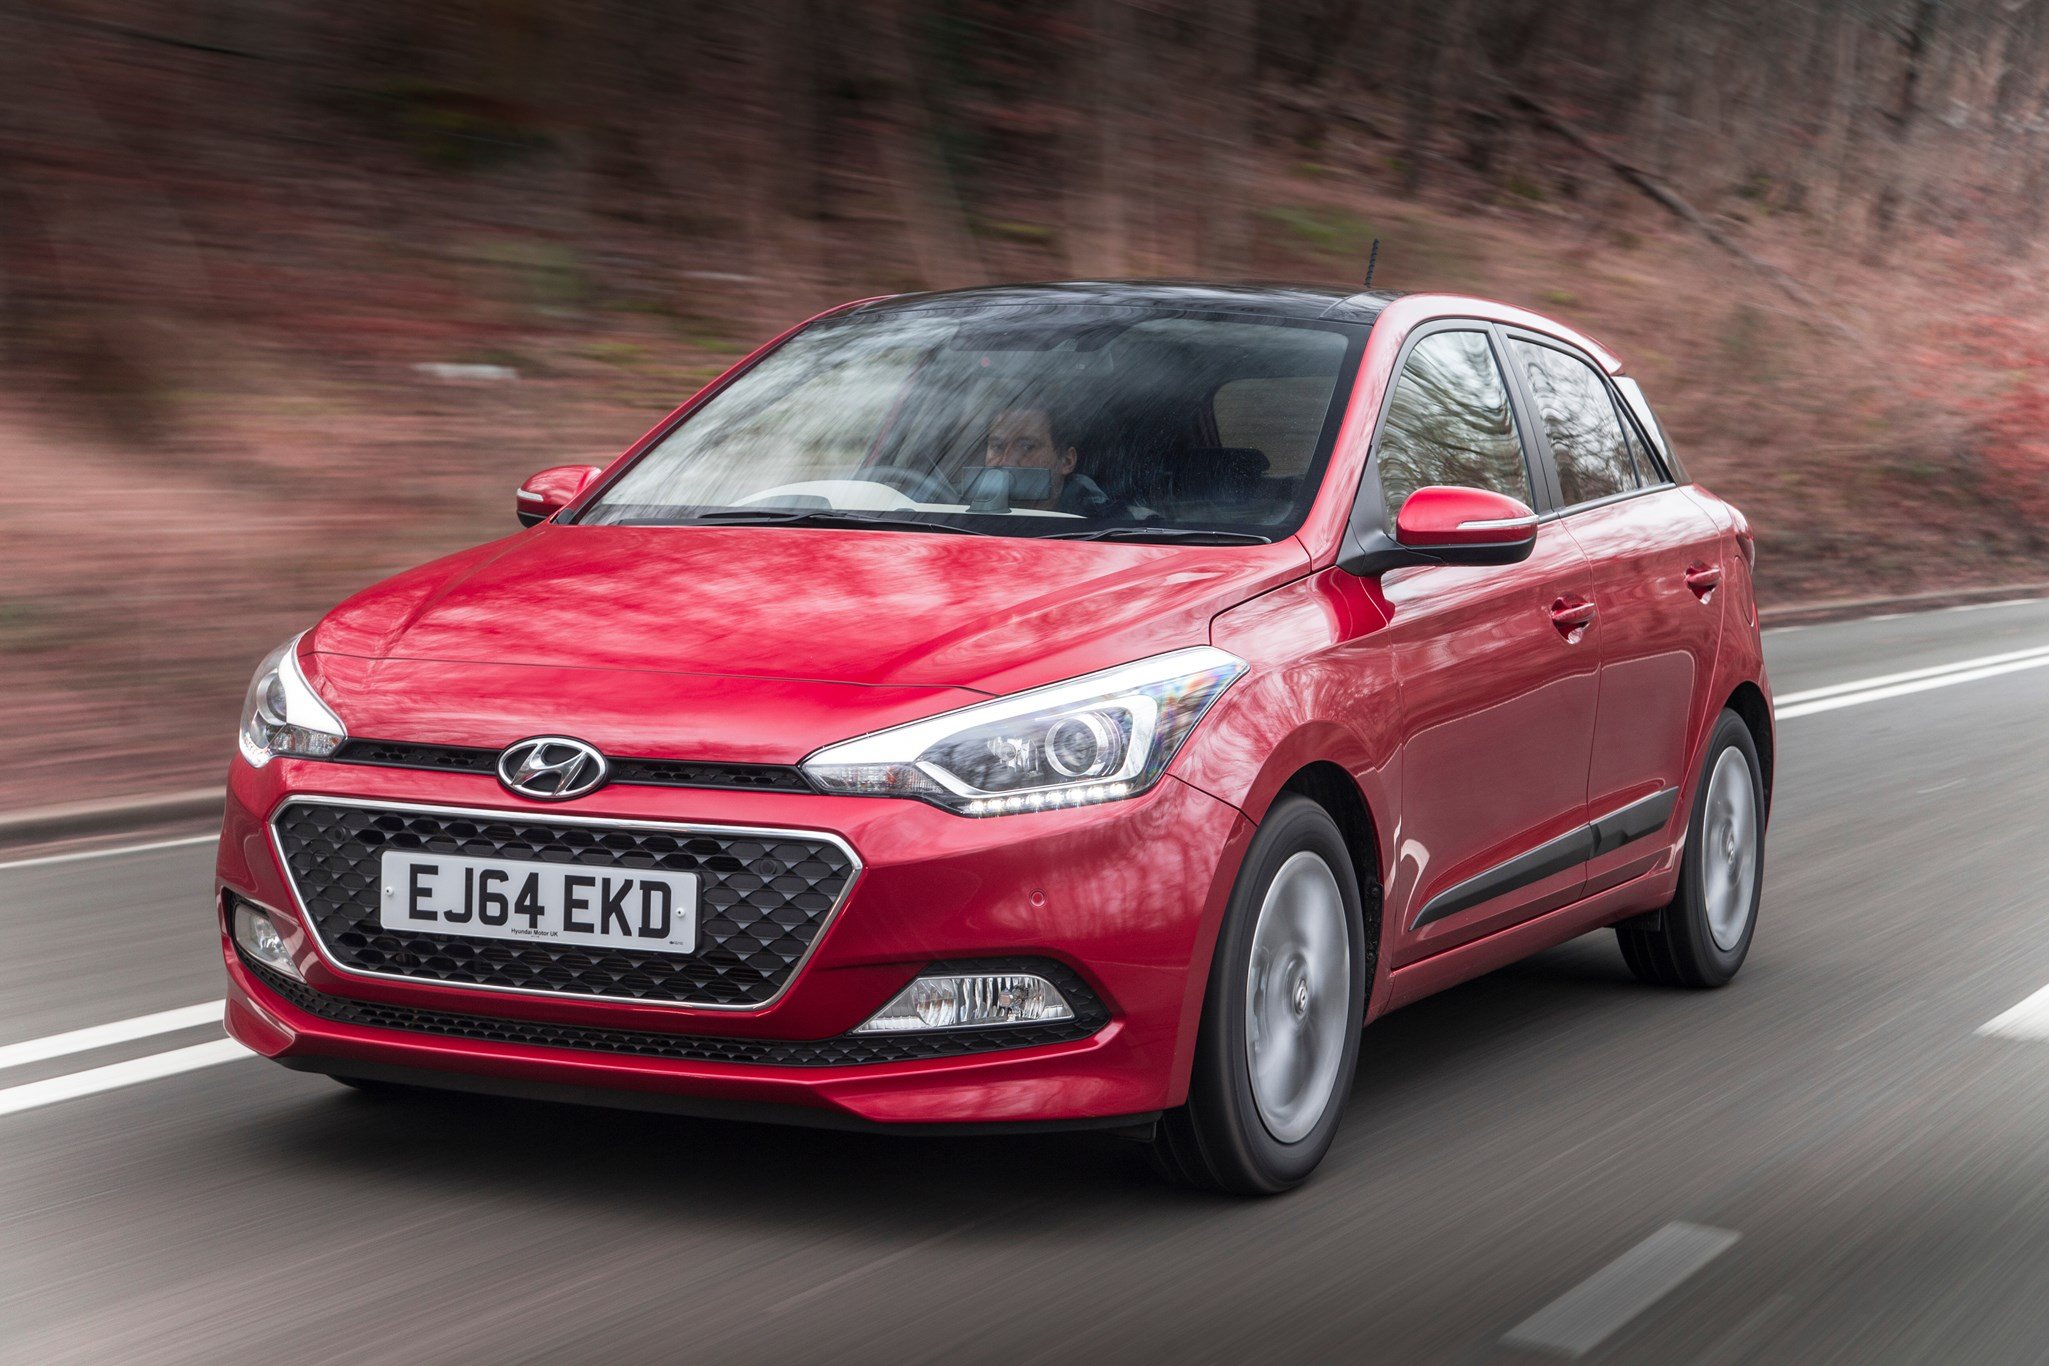 New 2015 Hyundai i20 has a more European flavour to its styling ...